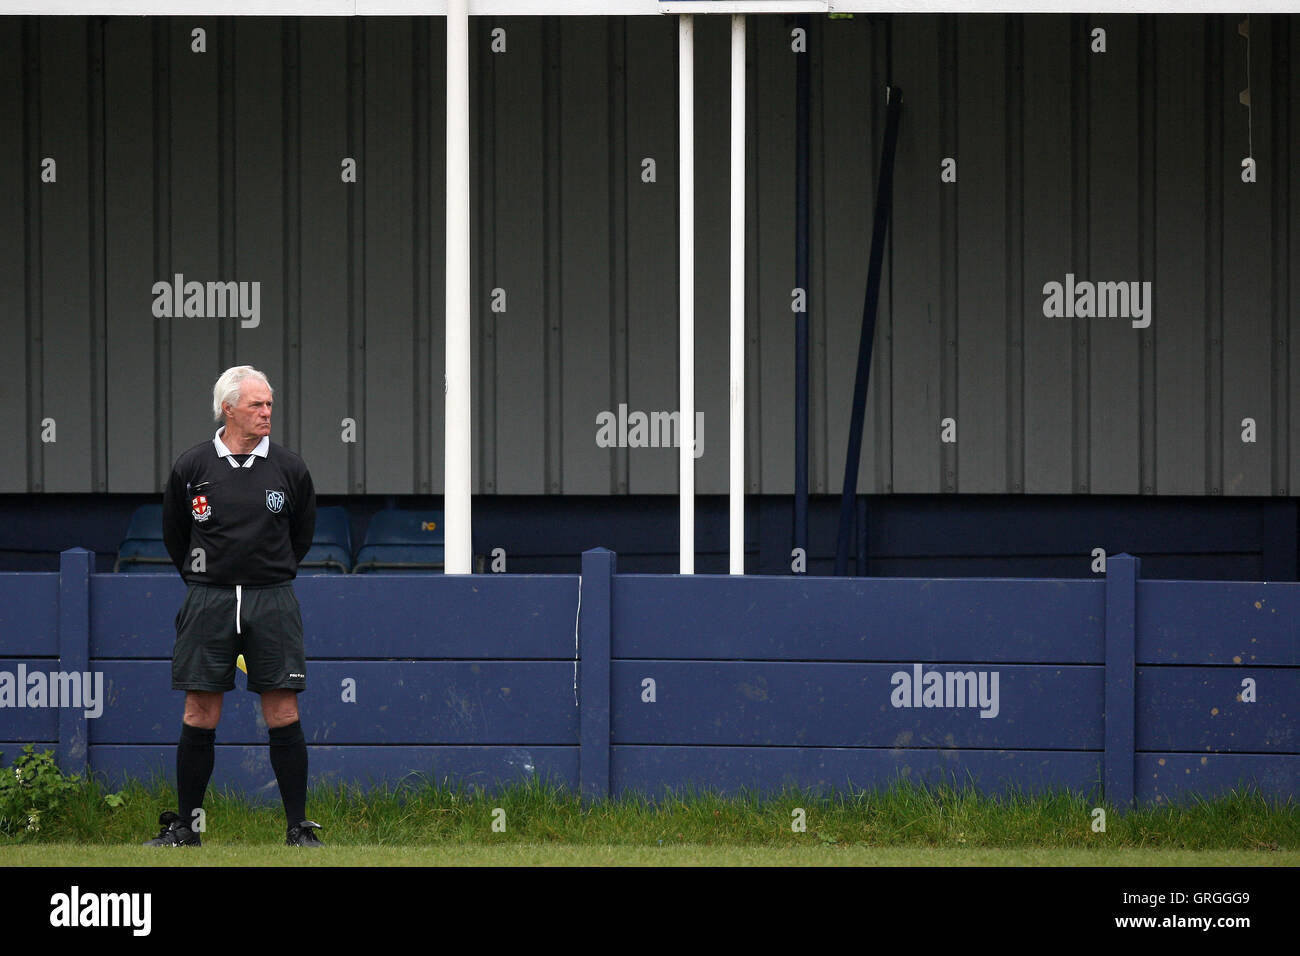 A match official is seen during the Hackney Gazette Cup Final at Leyton Football Club - 20/04/08 - Stock Image